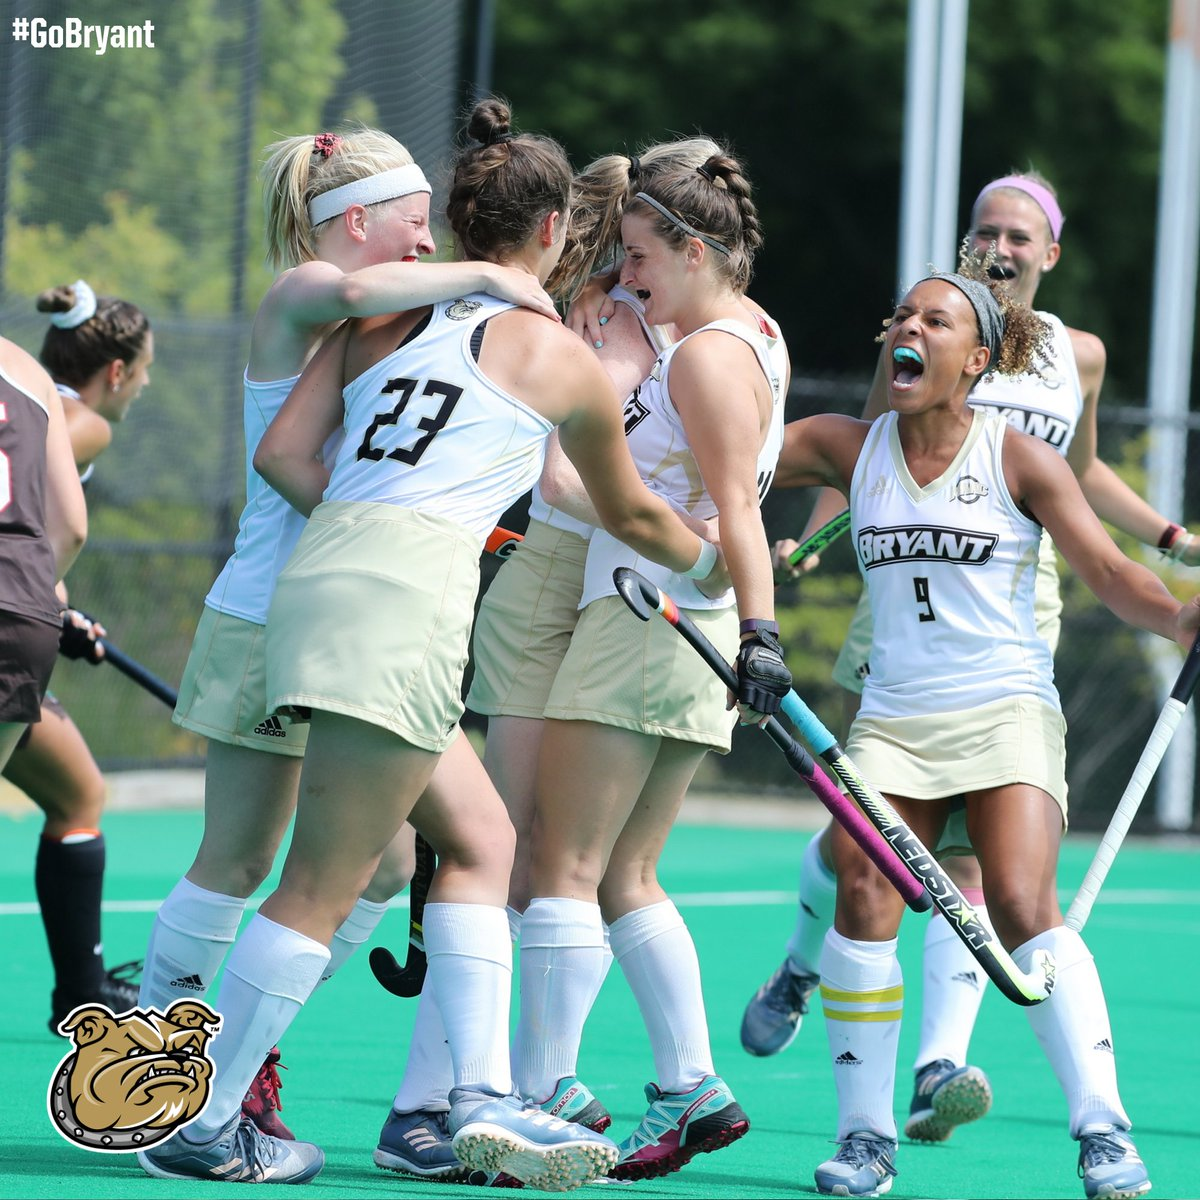 Less than an hour is remaining in the Jeff Doppelt '73 Black and Gold Challenge!   http://BryantBulldogs.com/giving   #GoBryant